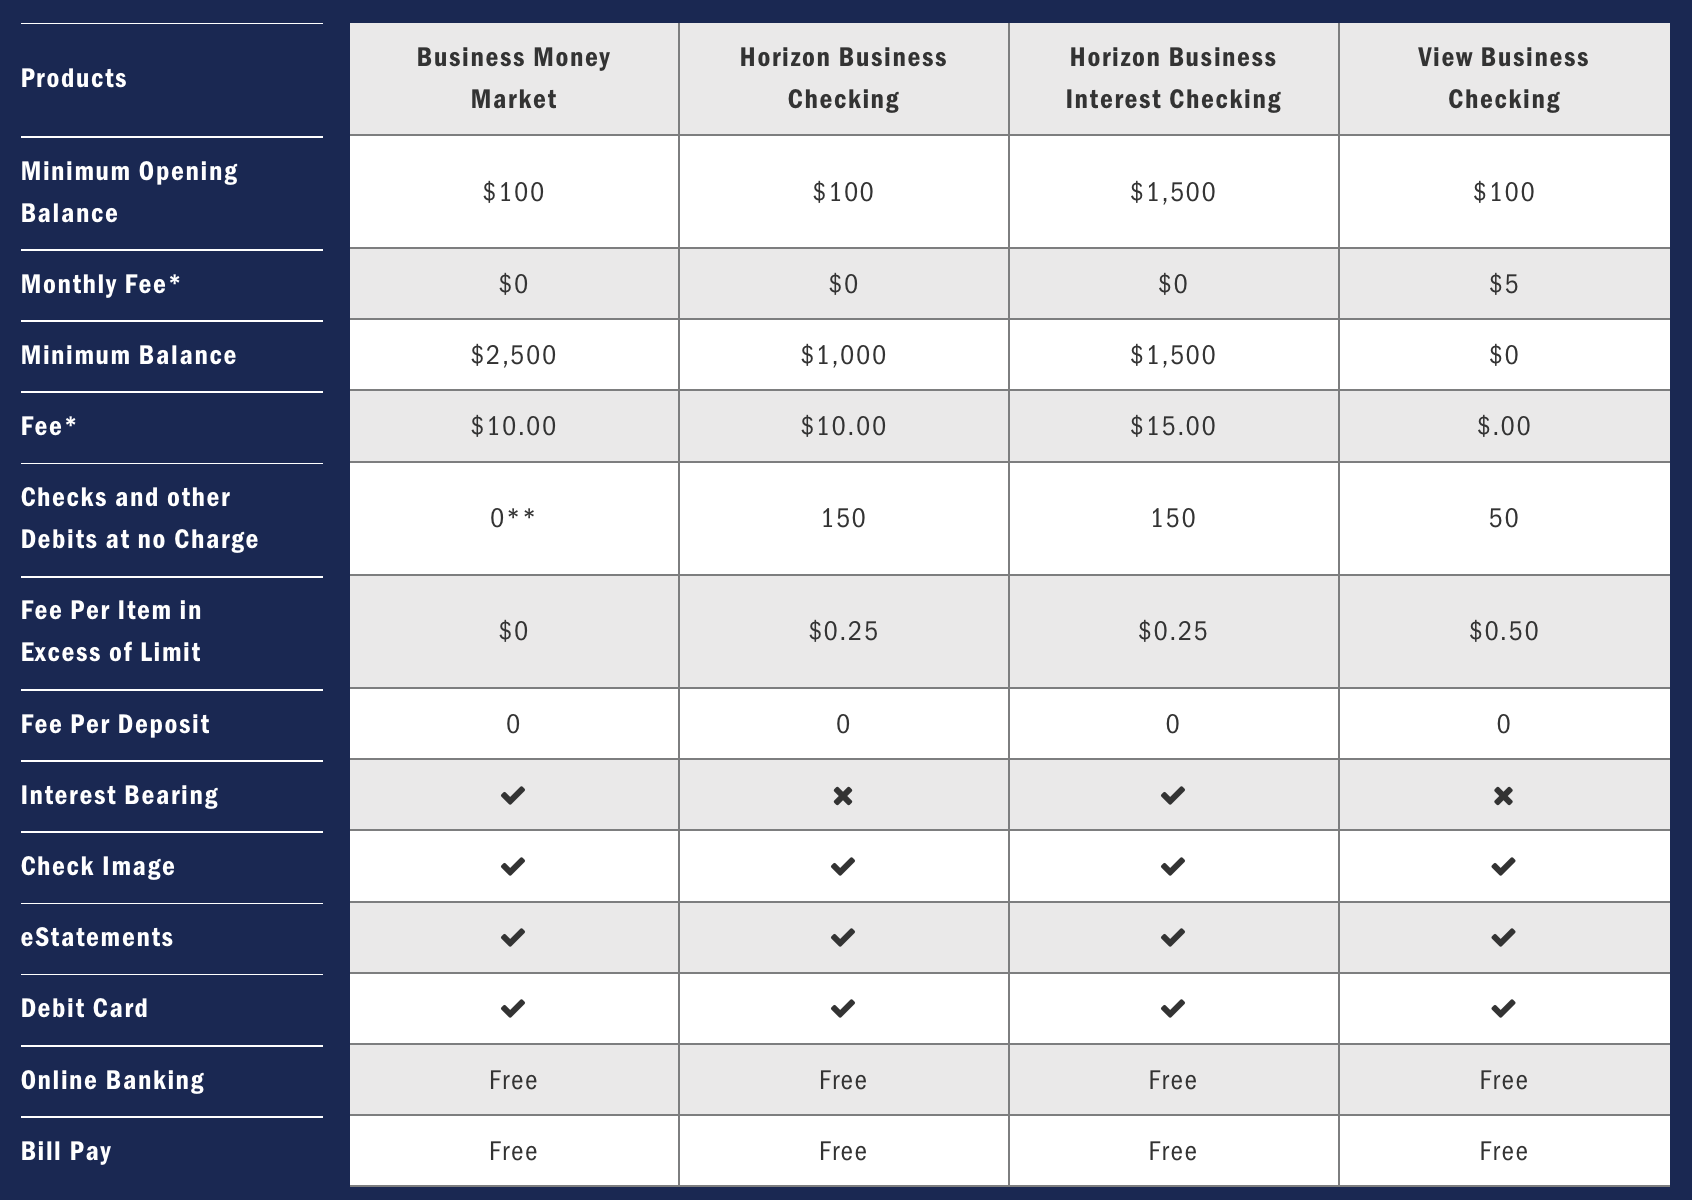 Compare Business Checking